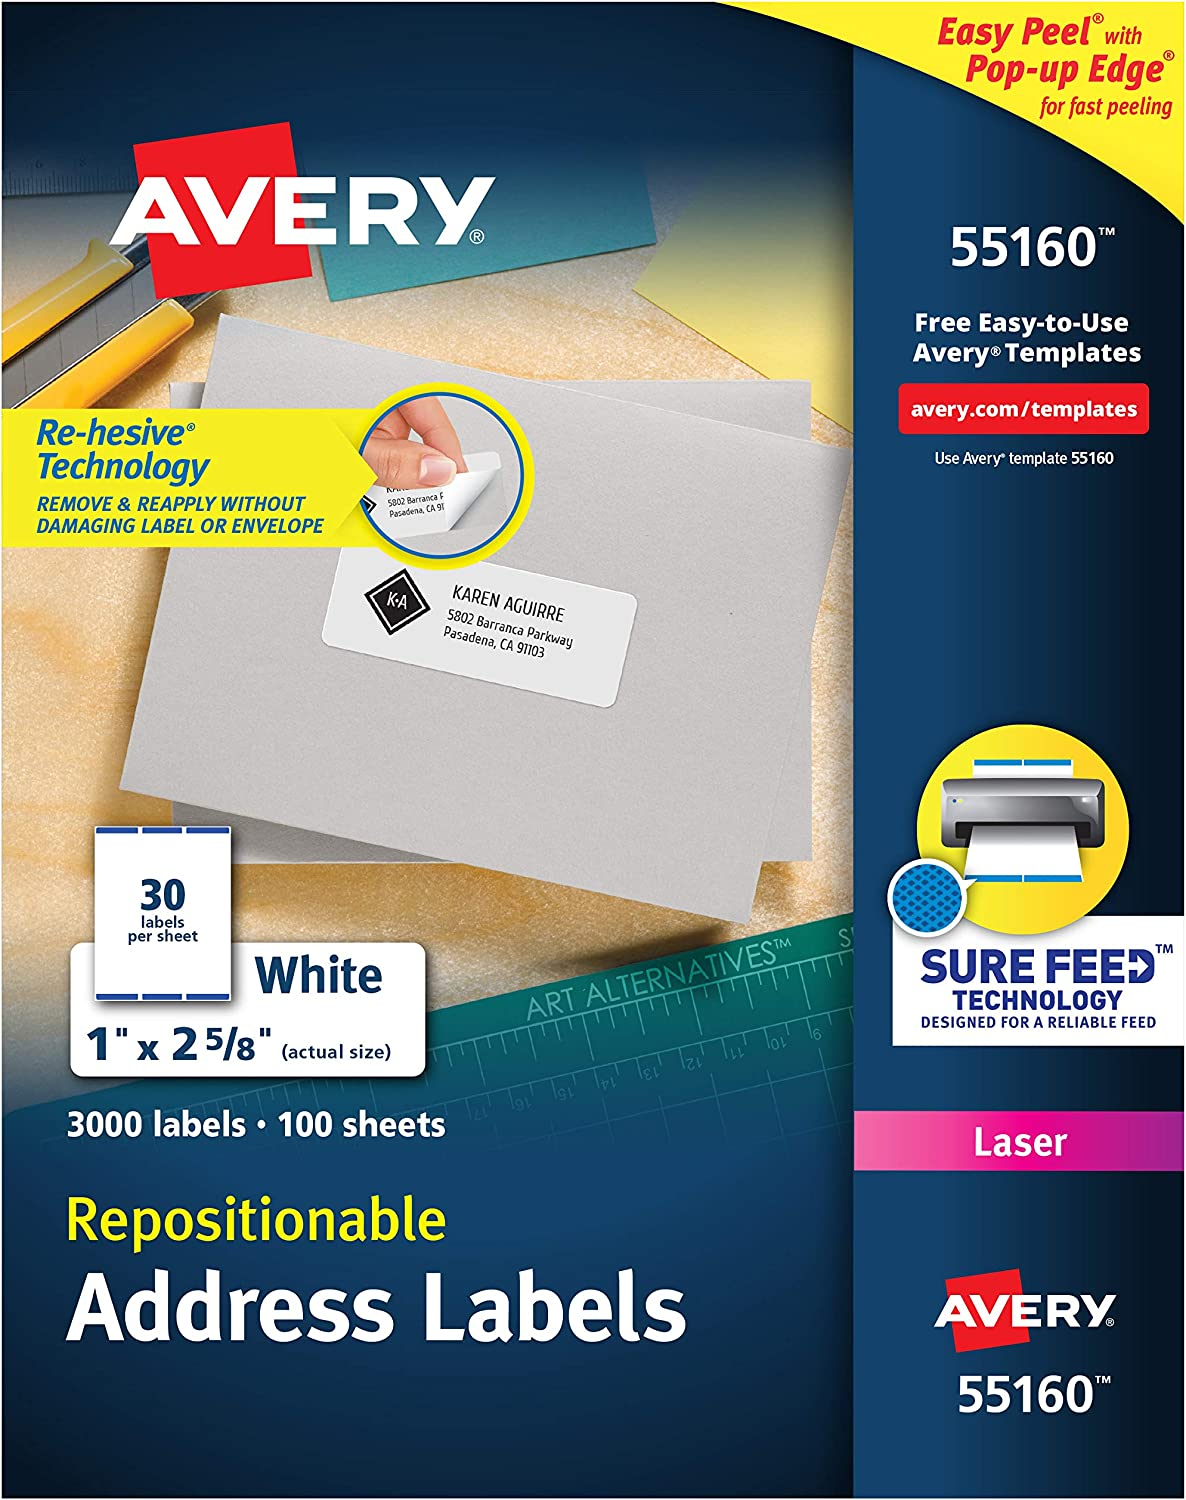 Avery Repositionable Address Labels for Inkjet Printers 1 x 2-5/8, Box of 3,000 (55160)